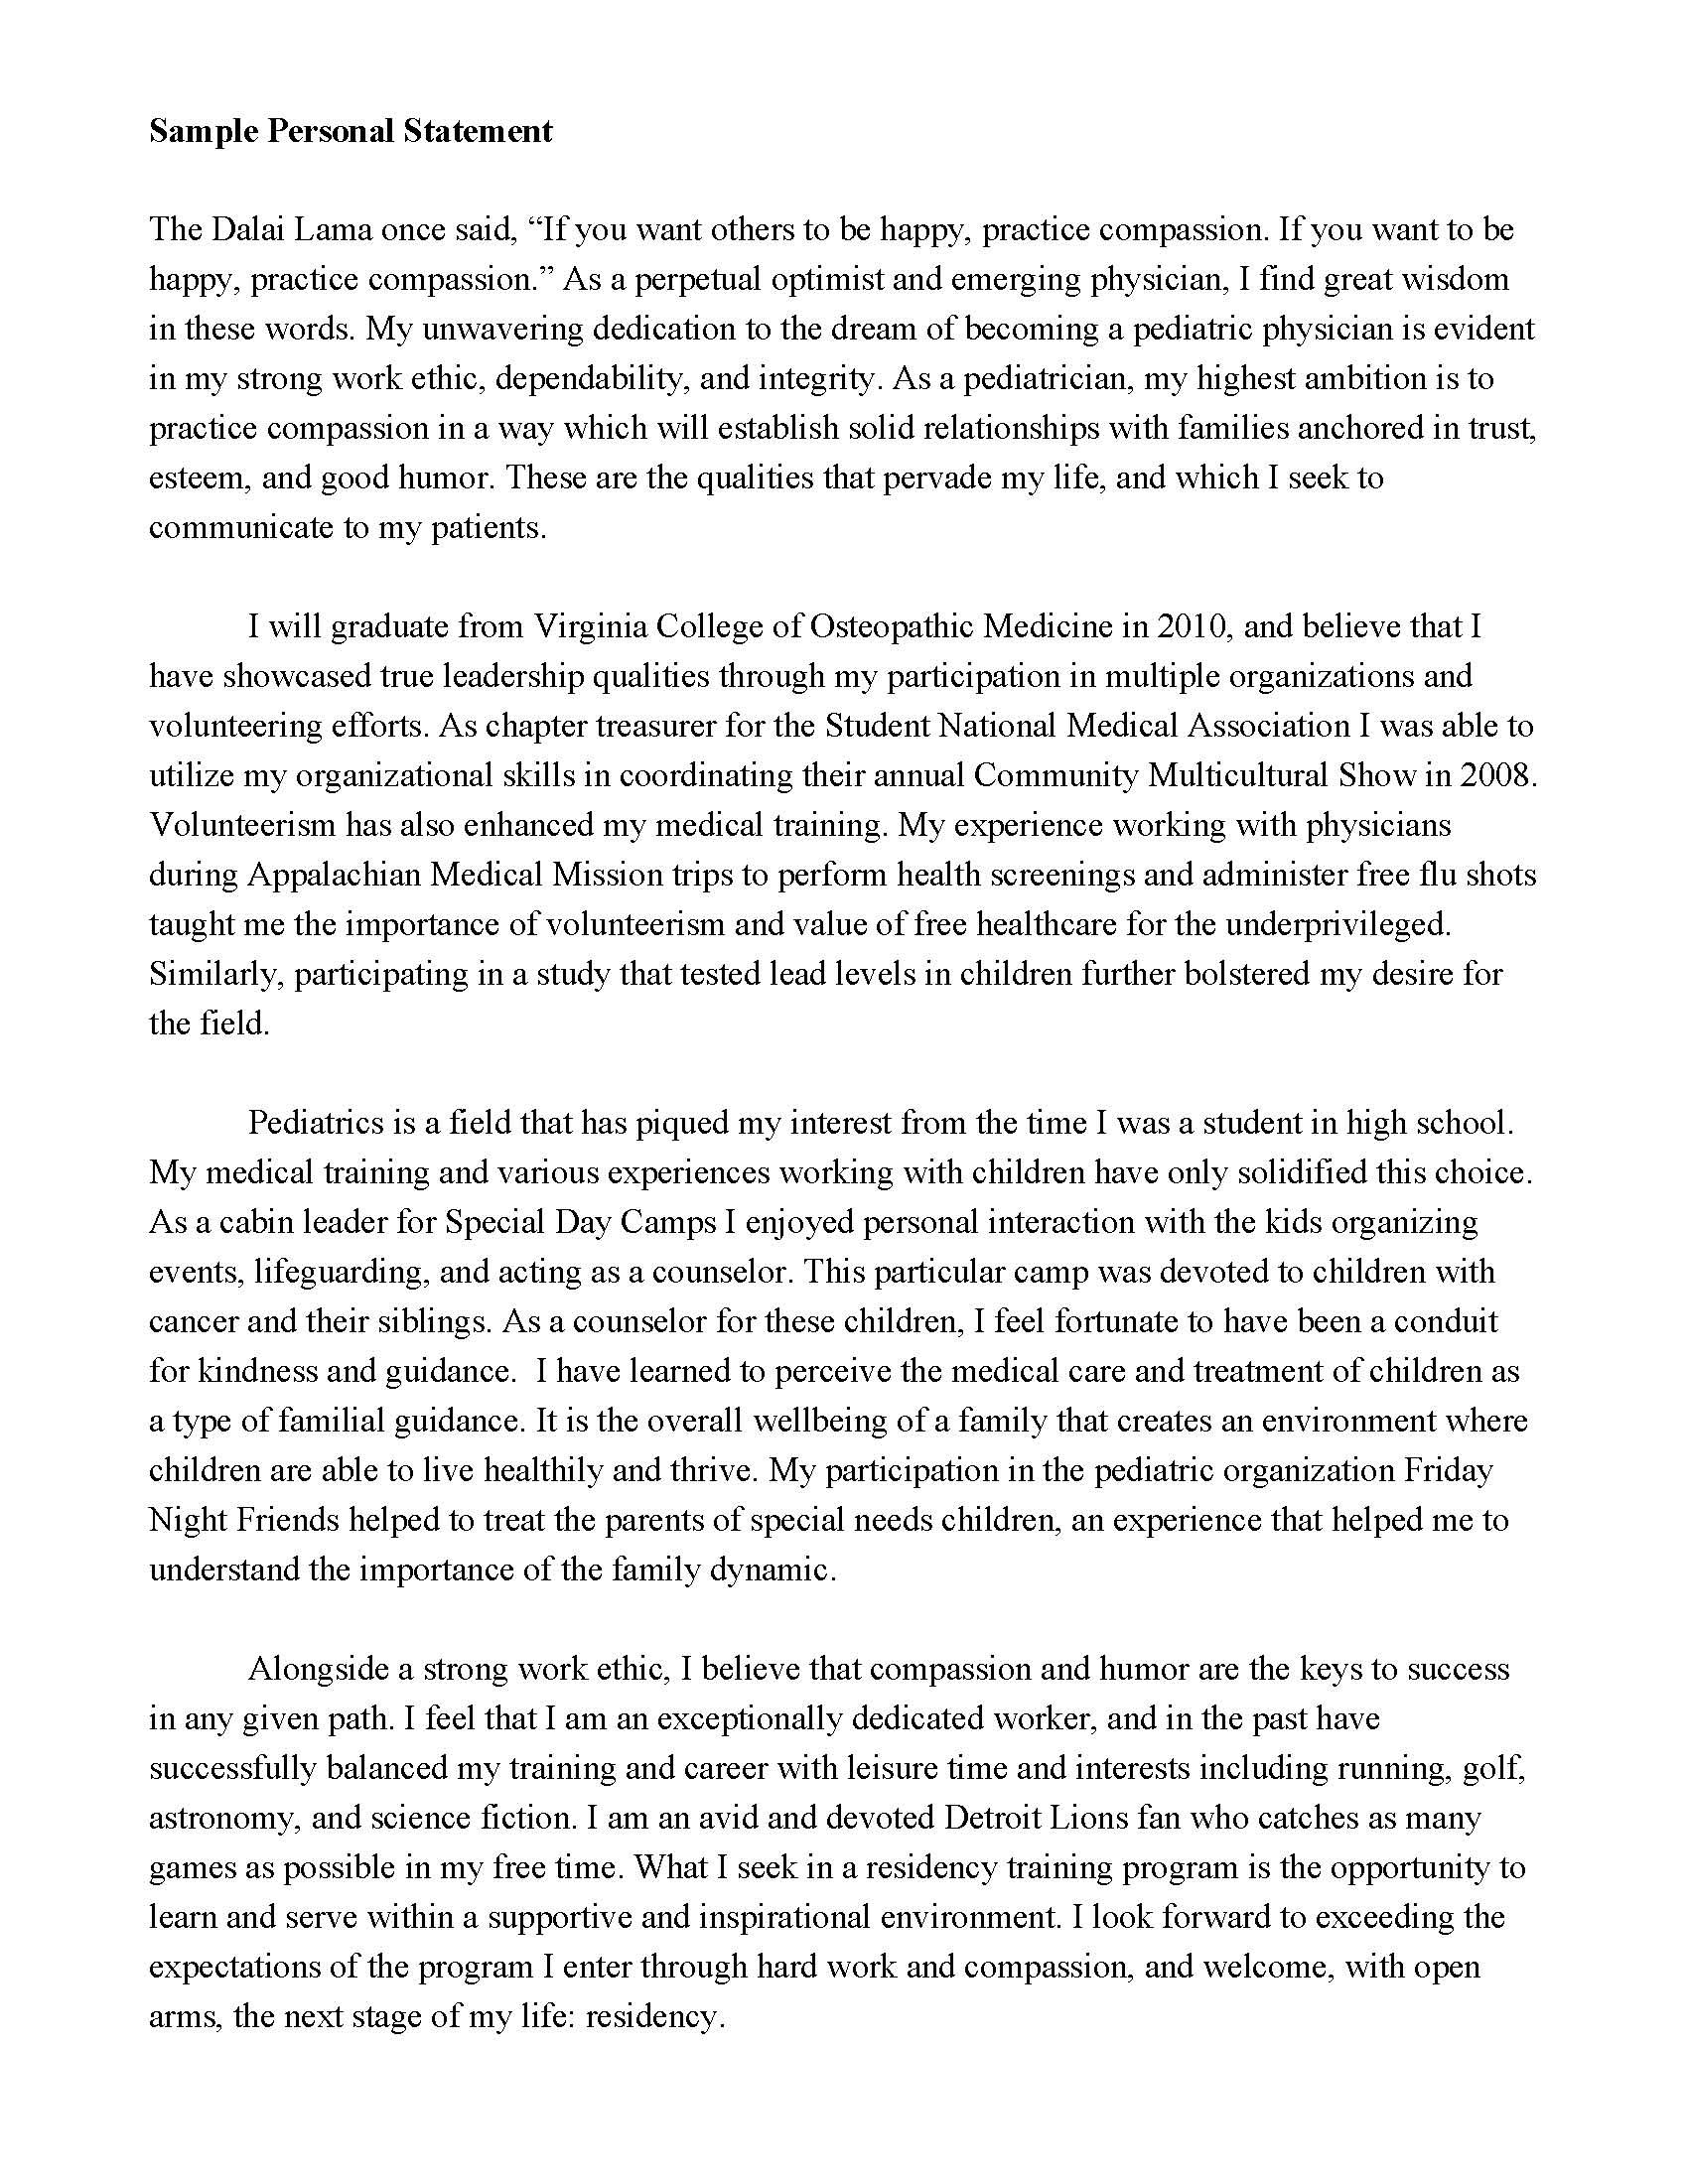 Museum of tolerance essay